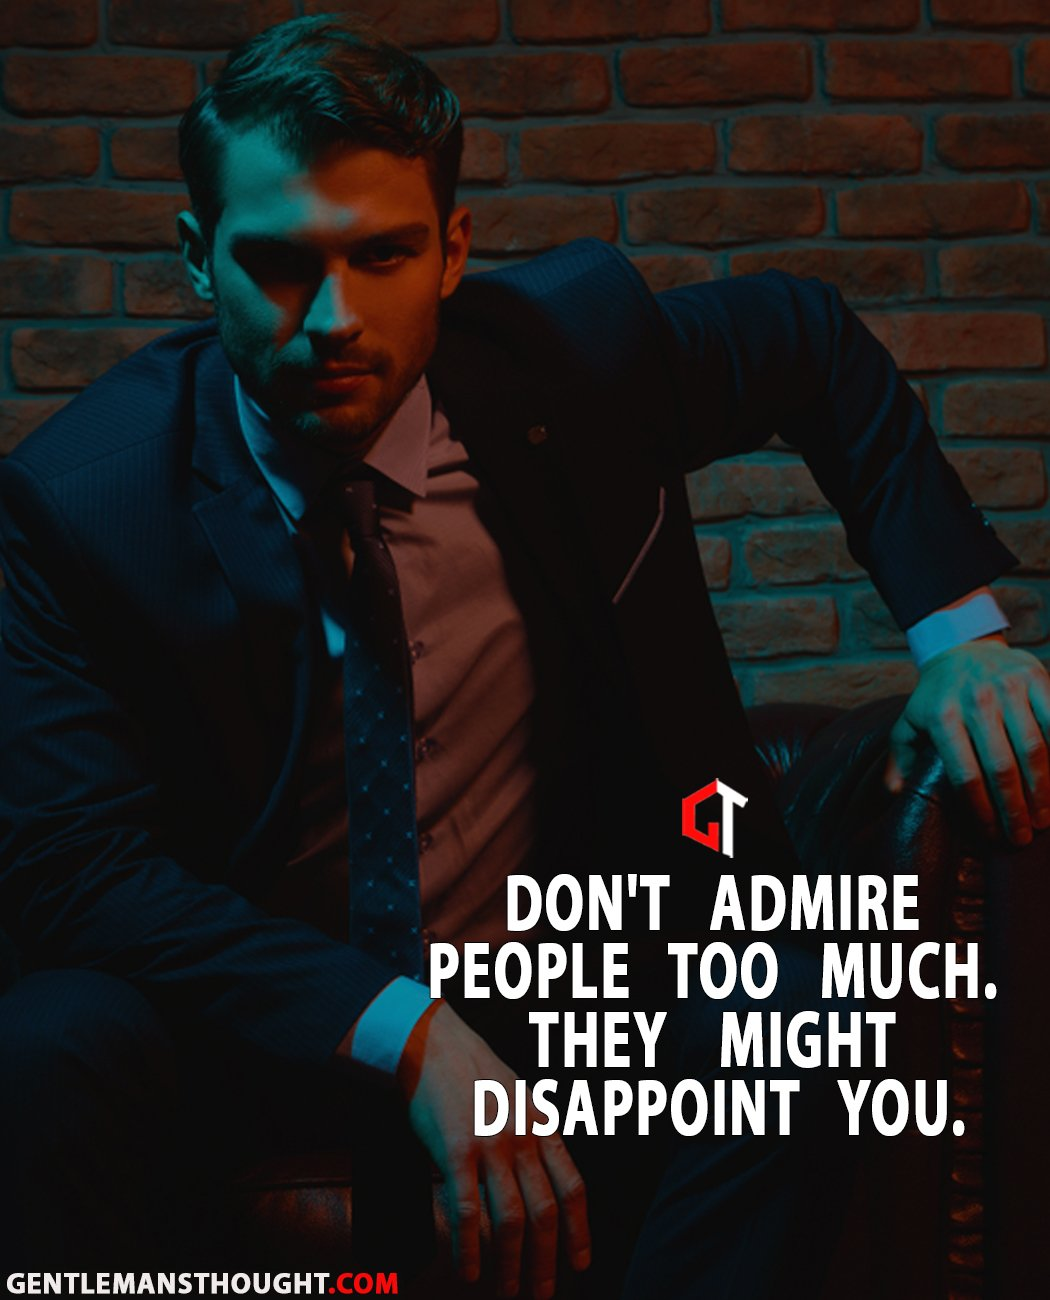 Don't admire people too much. They might disappoint you.